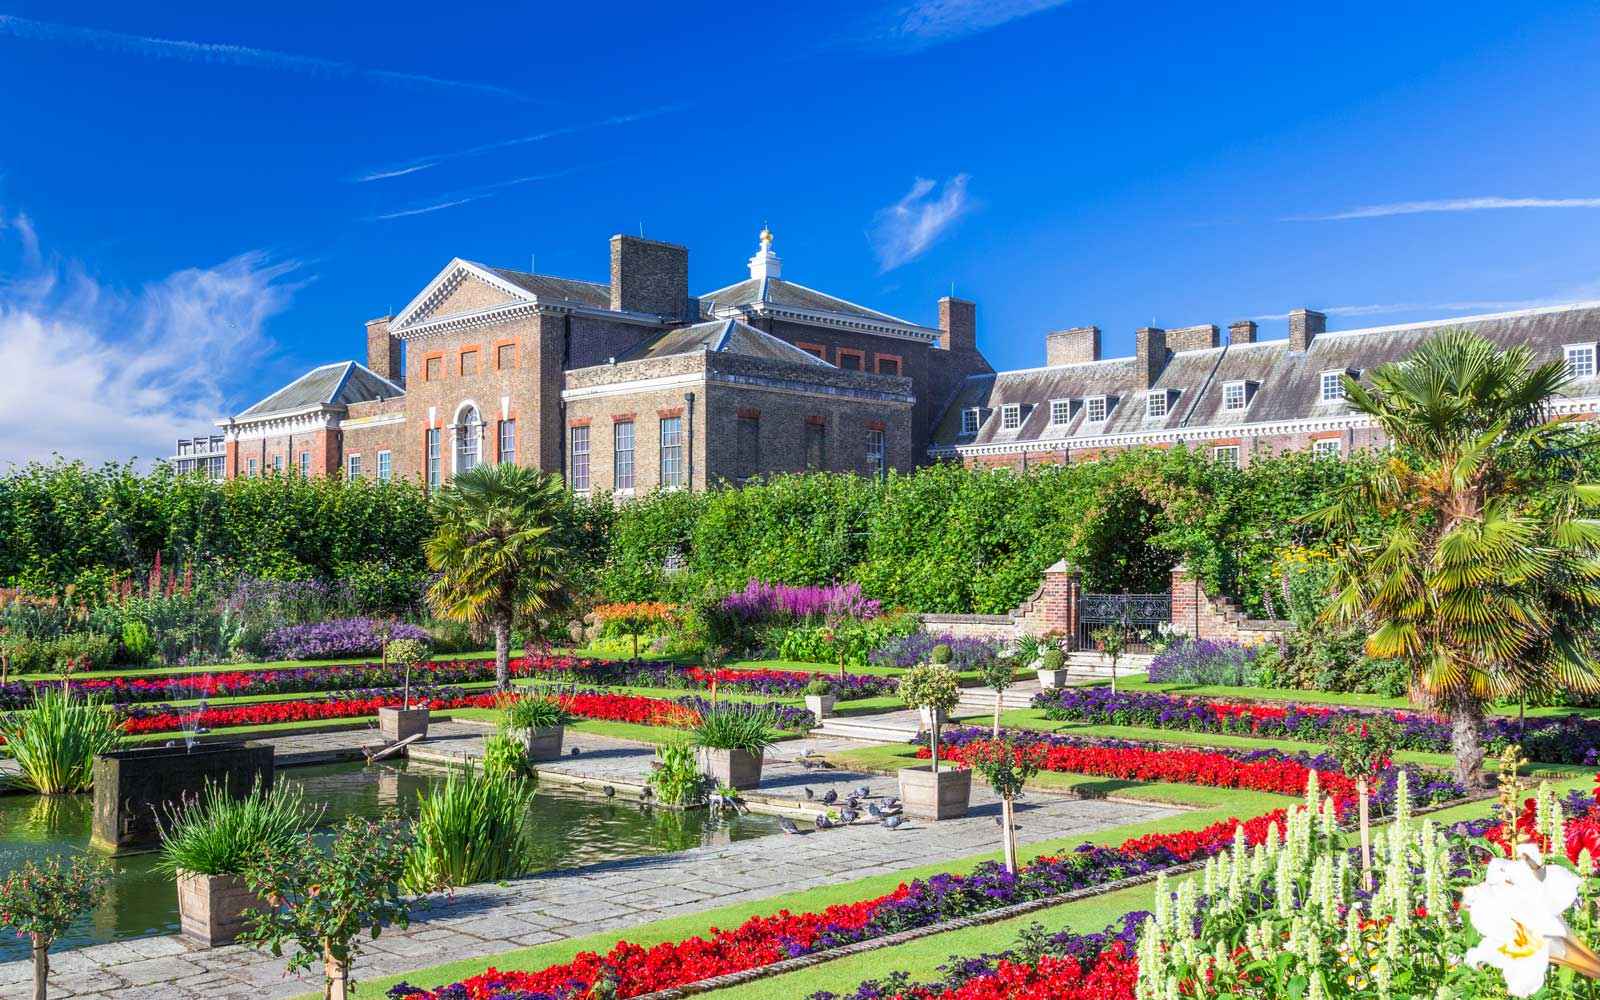 Royal Secrets From a Behind-the-scenes Tour of Kensington Palace